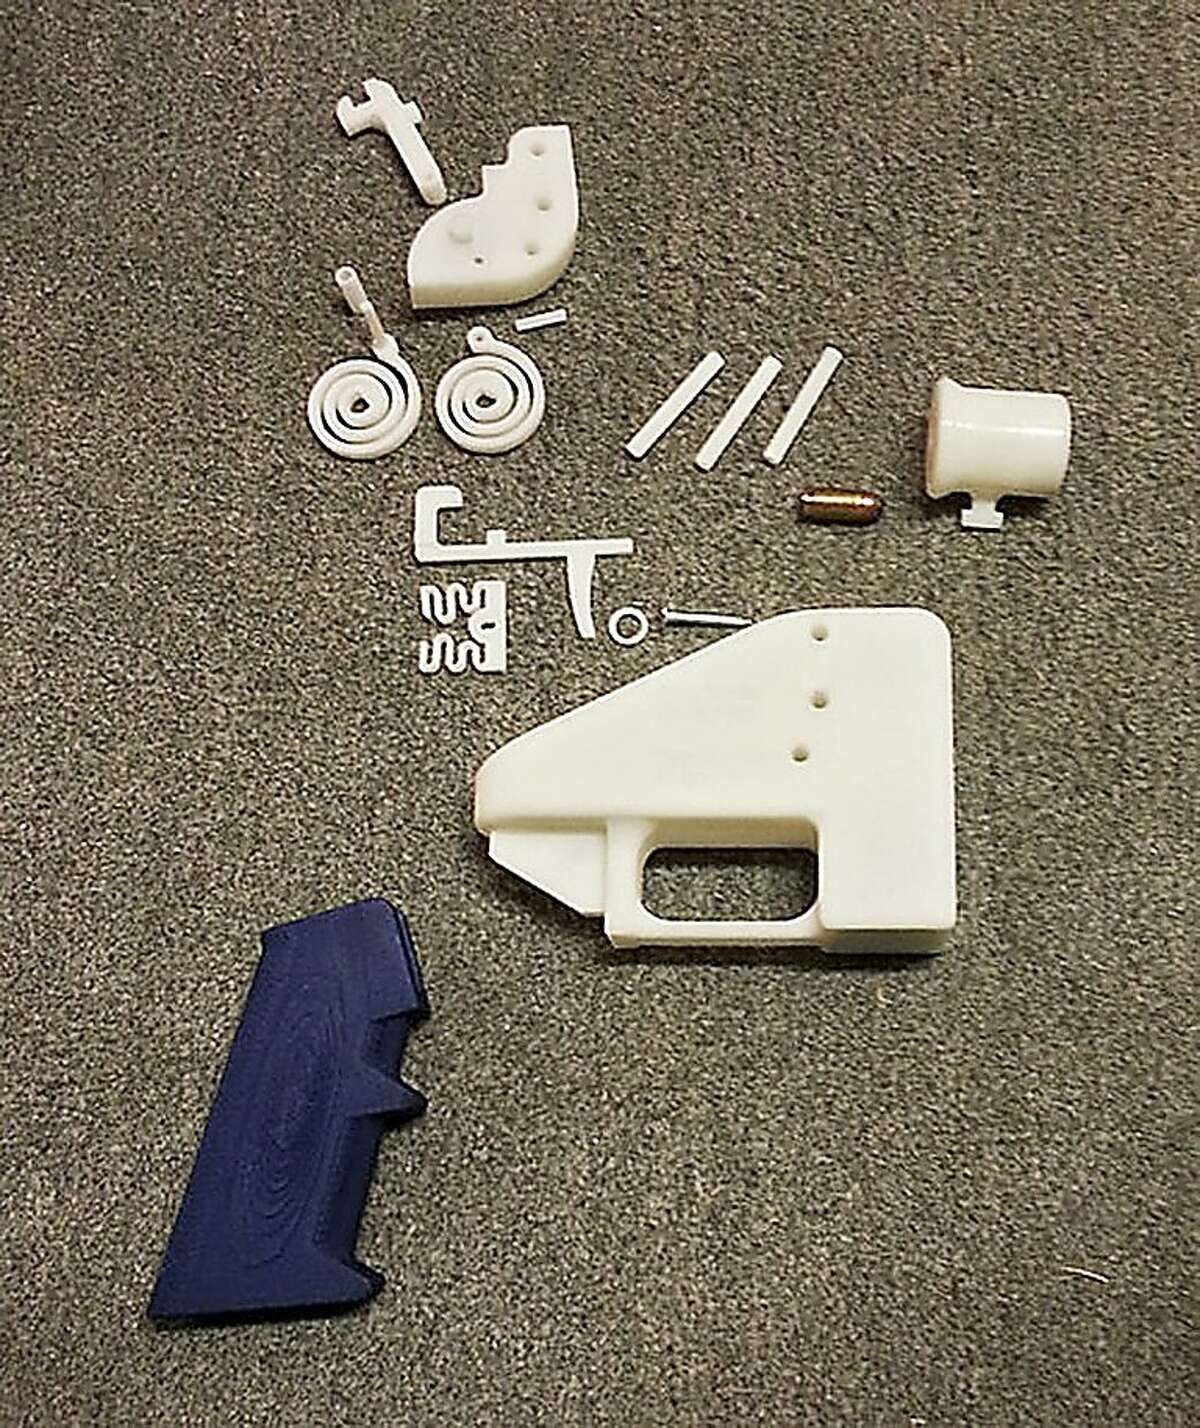 An undated handout photo of the parts of Defense Distributed's Liberator pistol, made using a 3-D printer, which the Bureau of Alcohol, Tobacco, Firearms and Explosives found capable of firing multiple .380-caliber metal bullets. Police and members of Congress fear the consequences if the Undetectable Firearms Act is not updated and renewed. (Defense Distributed via The New York Times) -- NO SALES; FOR EDITORIAL USE ONLY WITH STORY SLUGGED GUNS DETECTION POLITICS BY JEREMY W. PETERS AND MICHAEL S. SCHMIDT. ALL OTHER USE PROHIBITED.